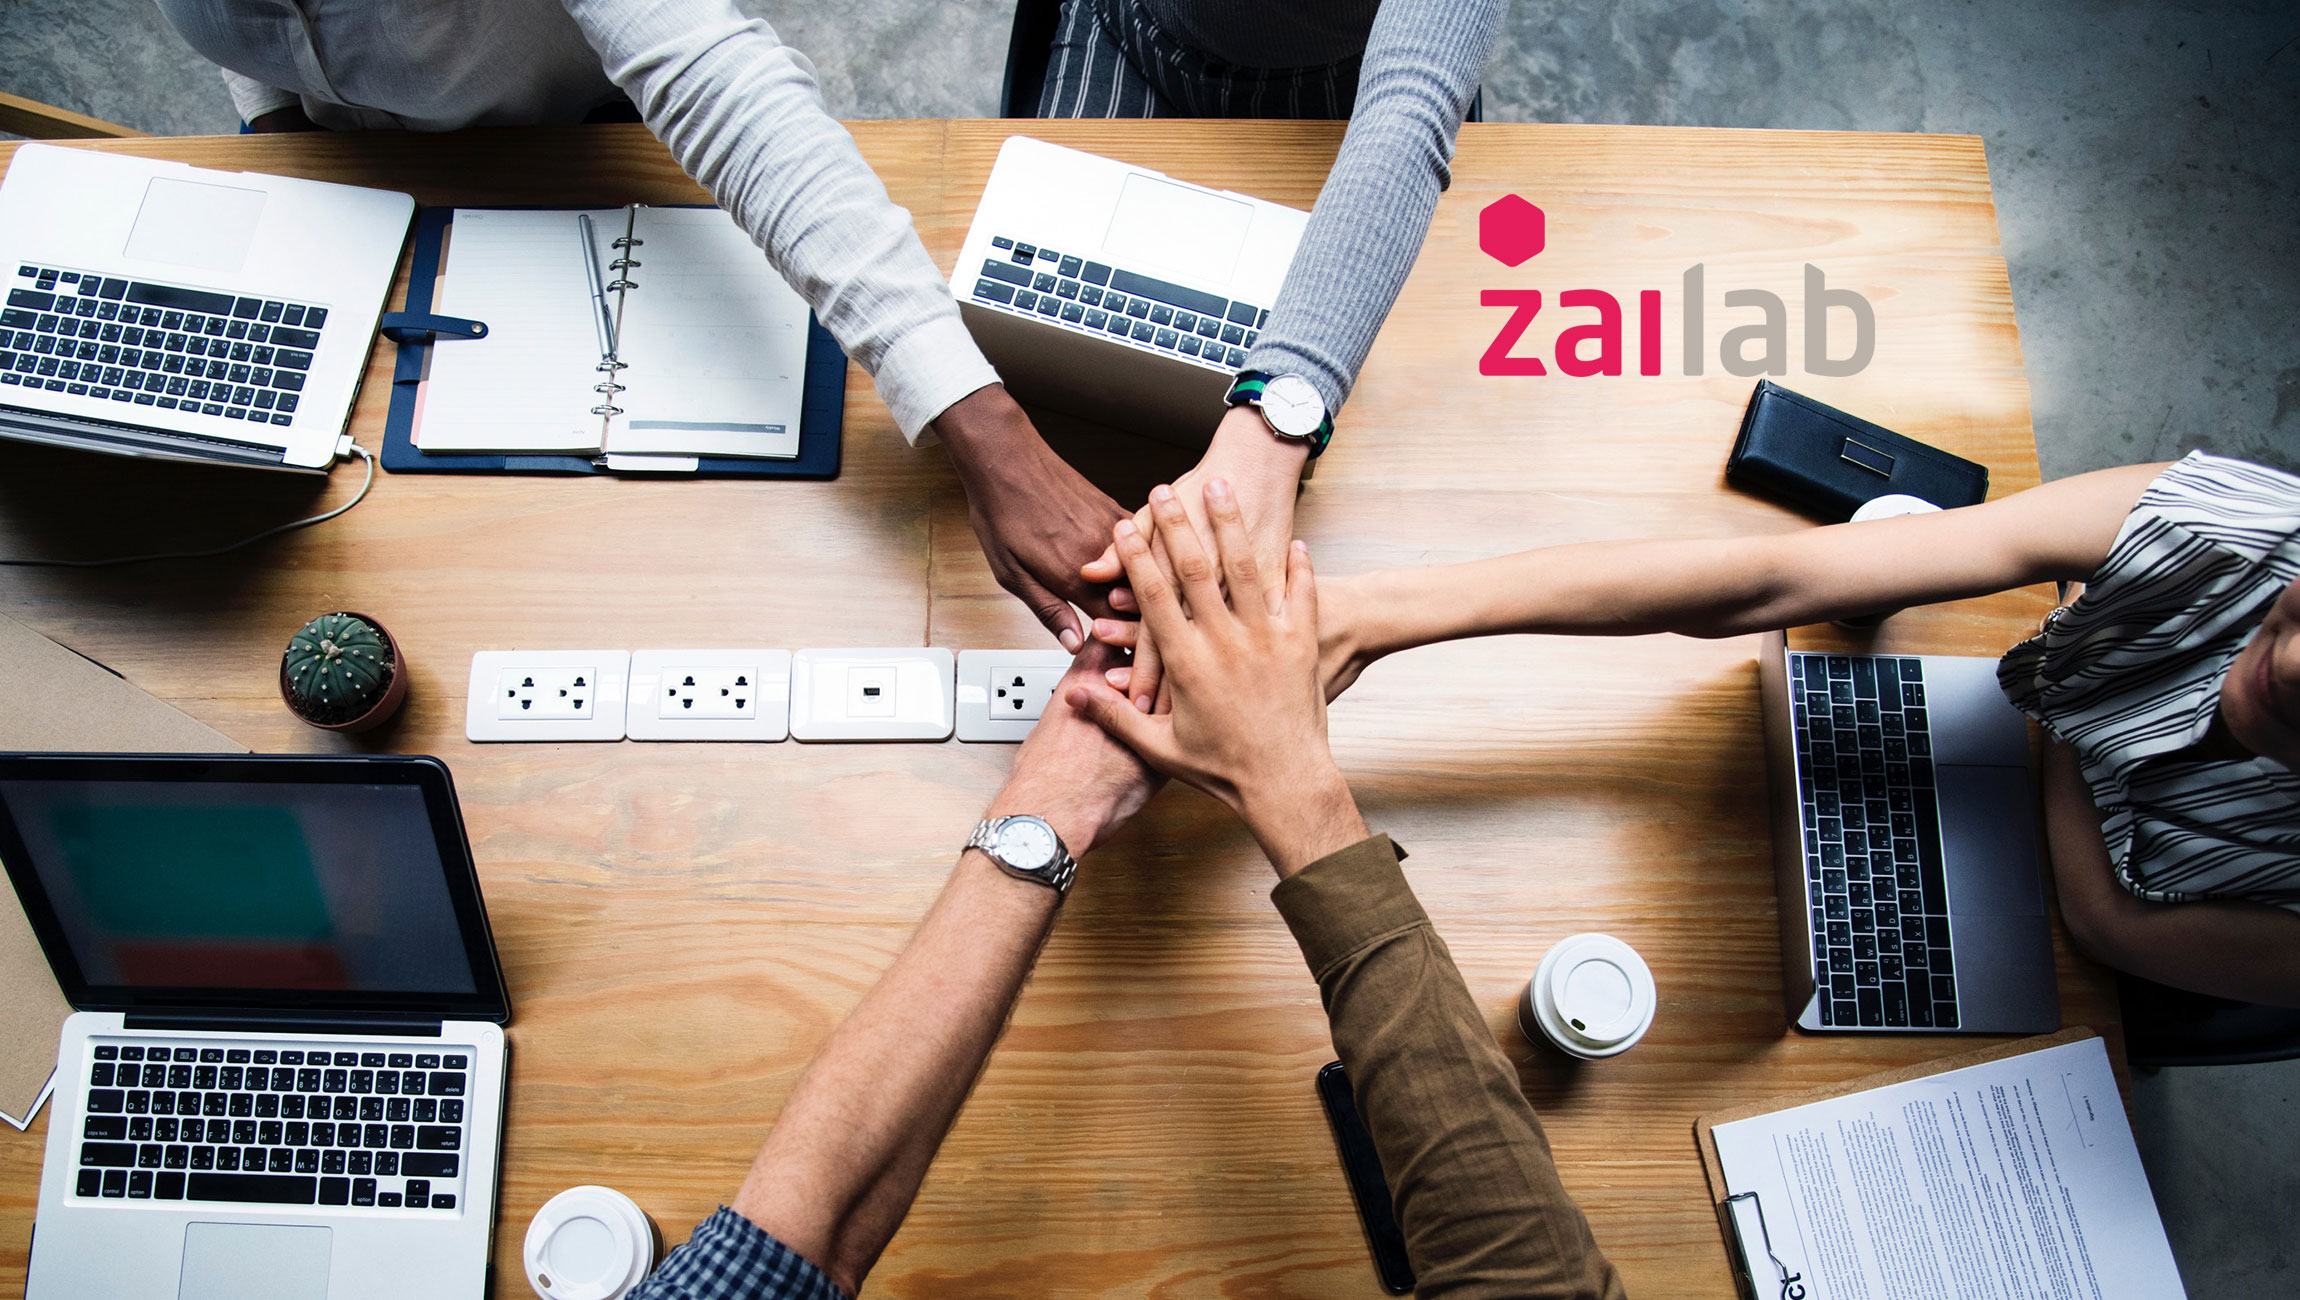 ZaiLab on Why Partnering with Intelisys Gives Them the Edge